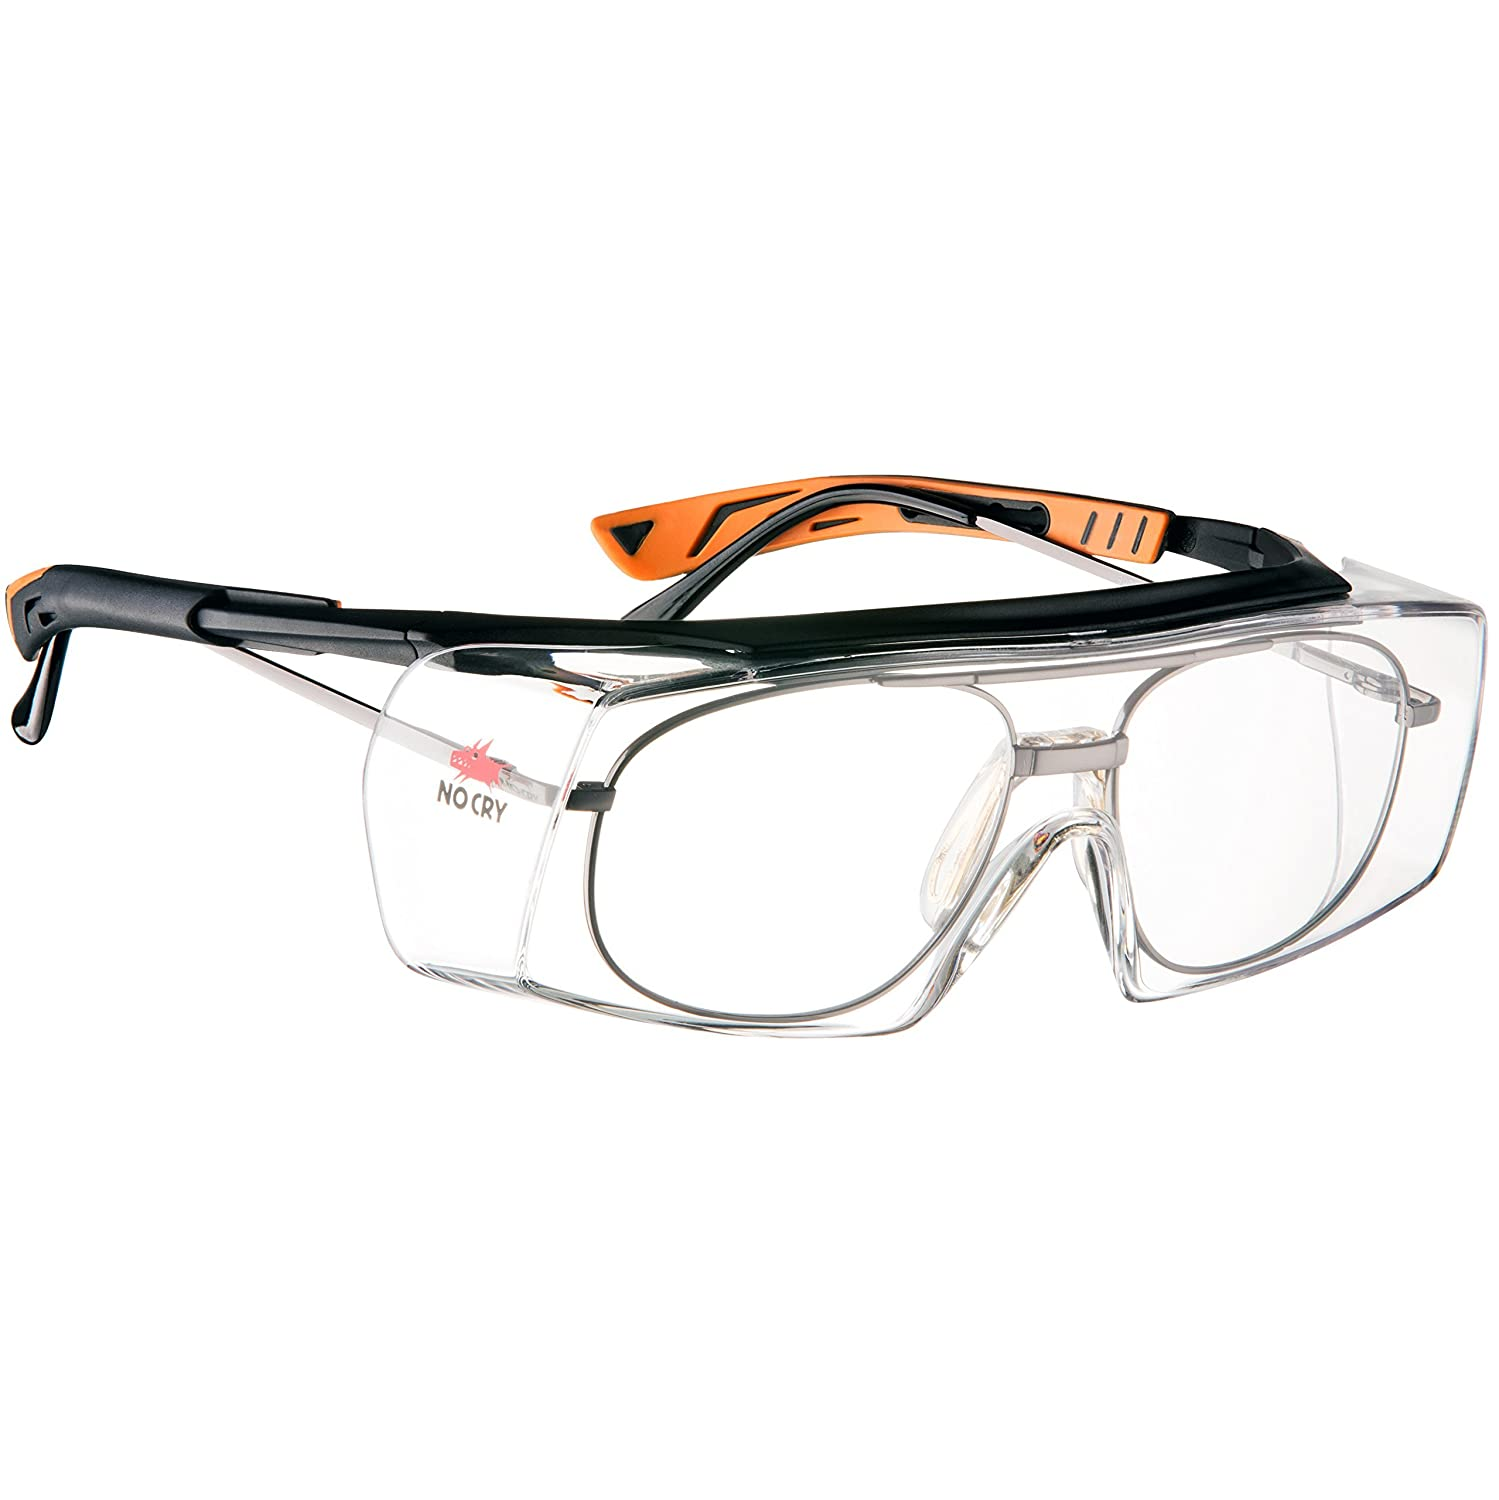 NoCry Over-Glasses Safety Glasses - with Clear Anti-Scratch Wraparound Lenses, Adjustable Arms, Side Shields, UV400 Protection, ANSI Z87 & OSHA Certified, Black and Orange Frames